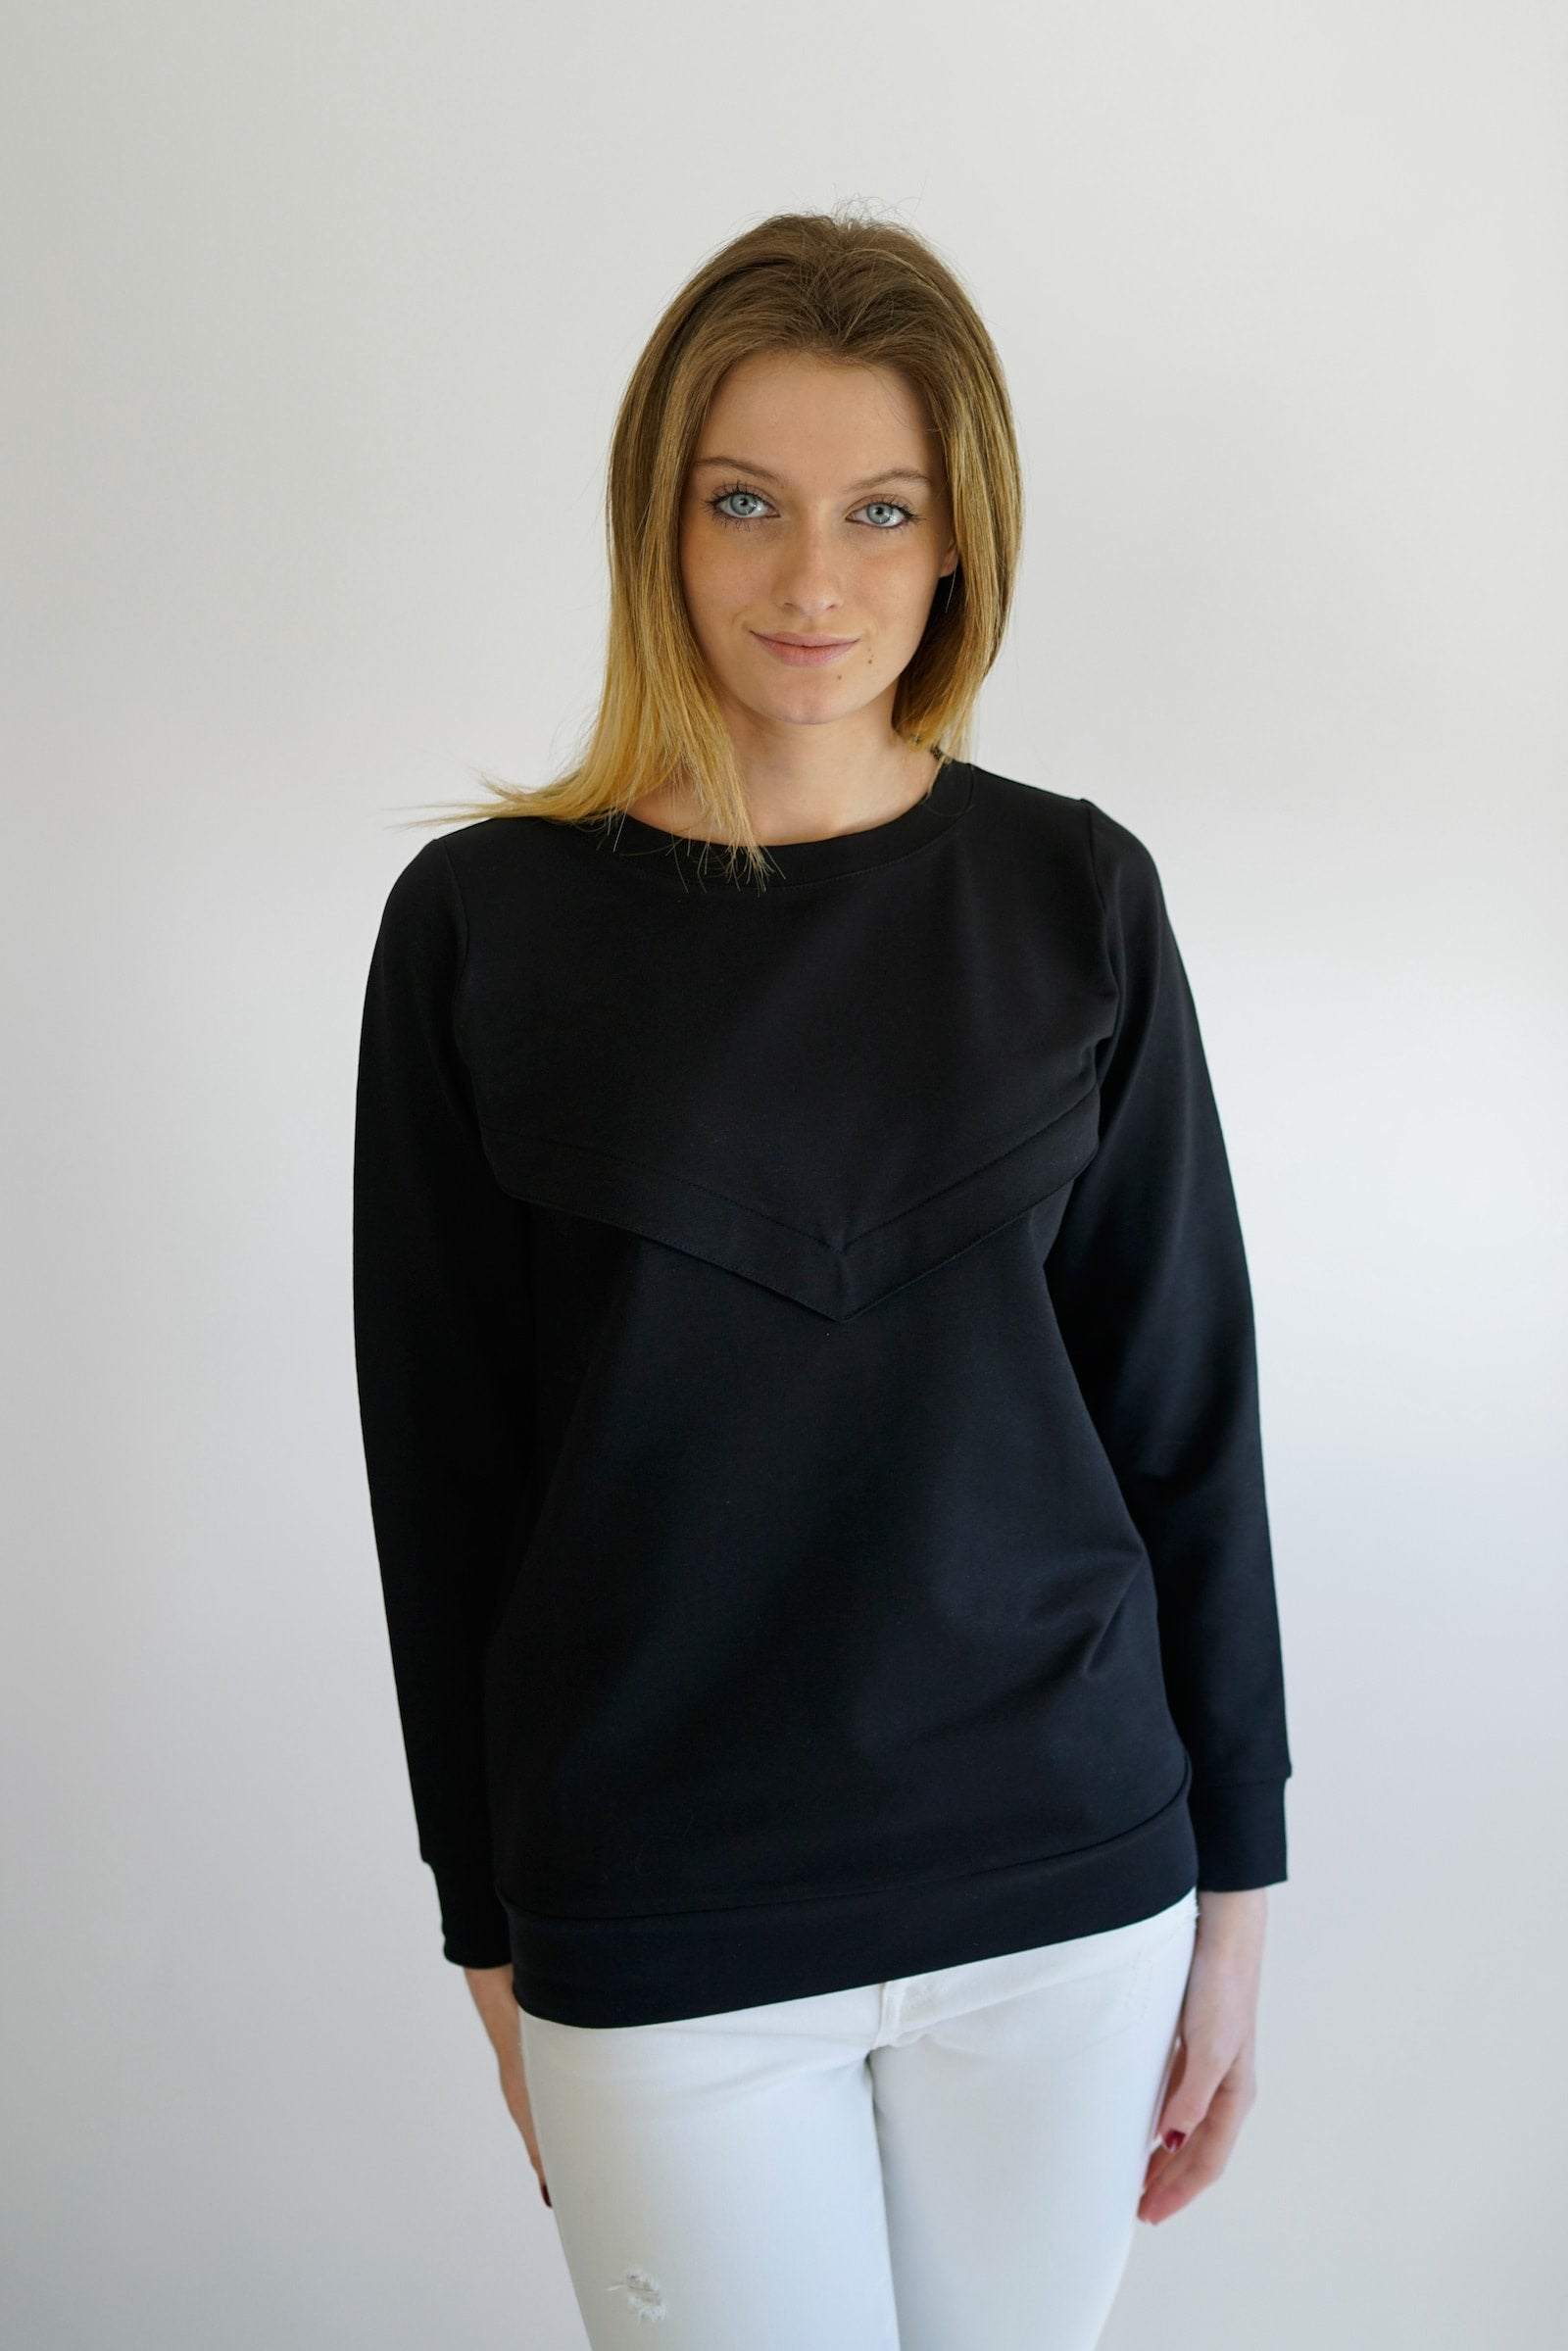 gemma 2.0 - nursing sweatshirt - black